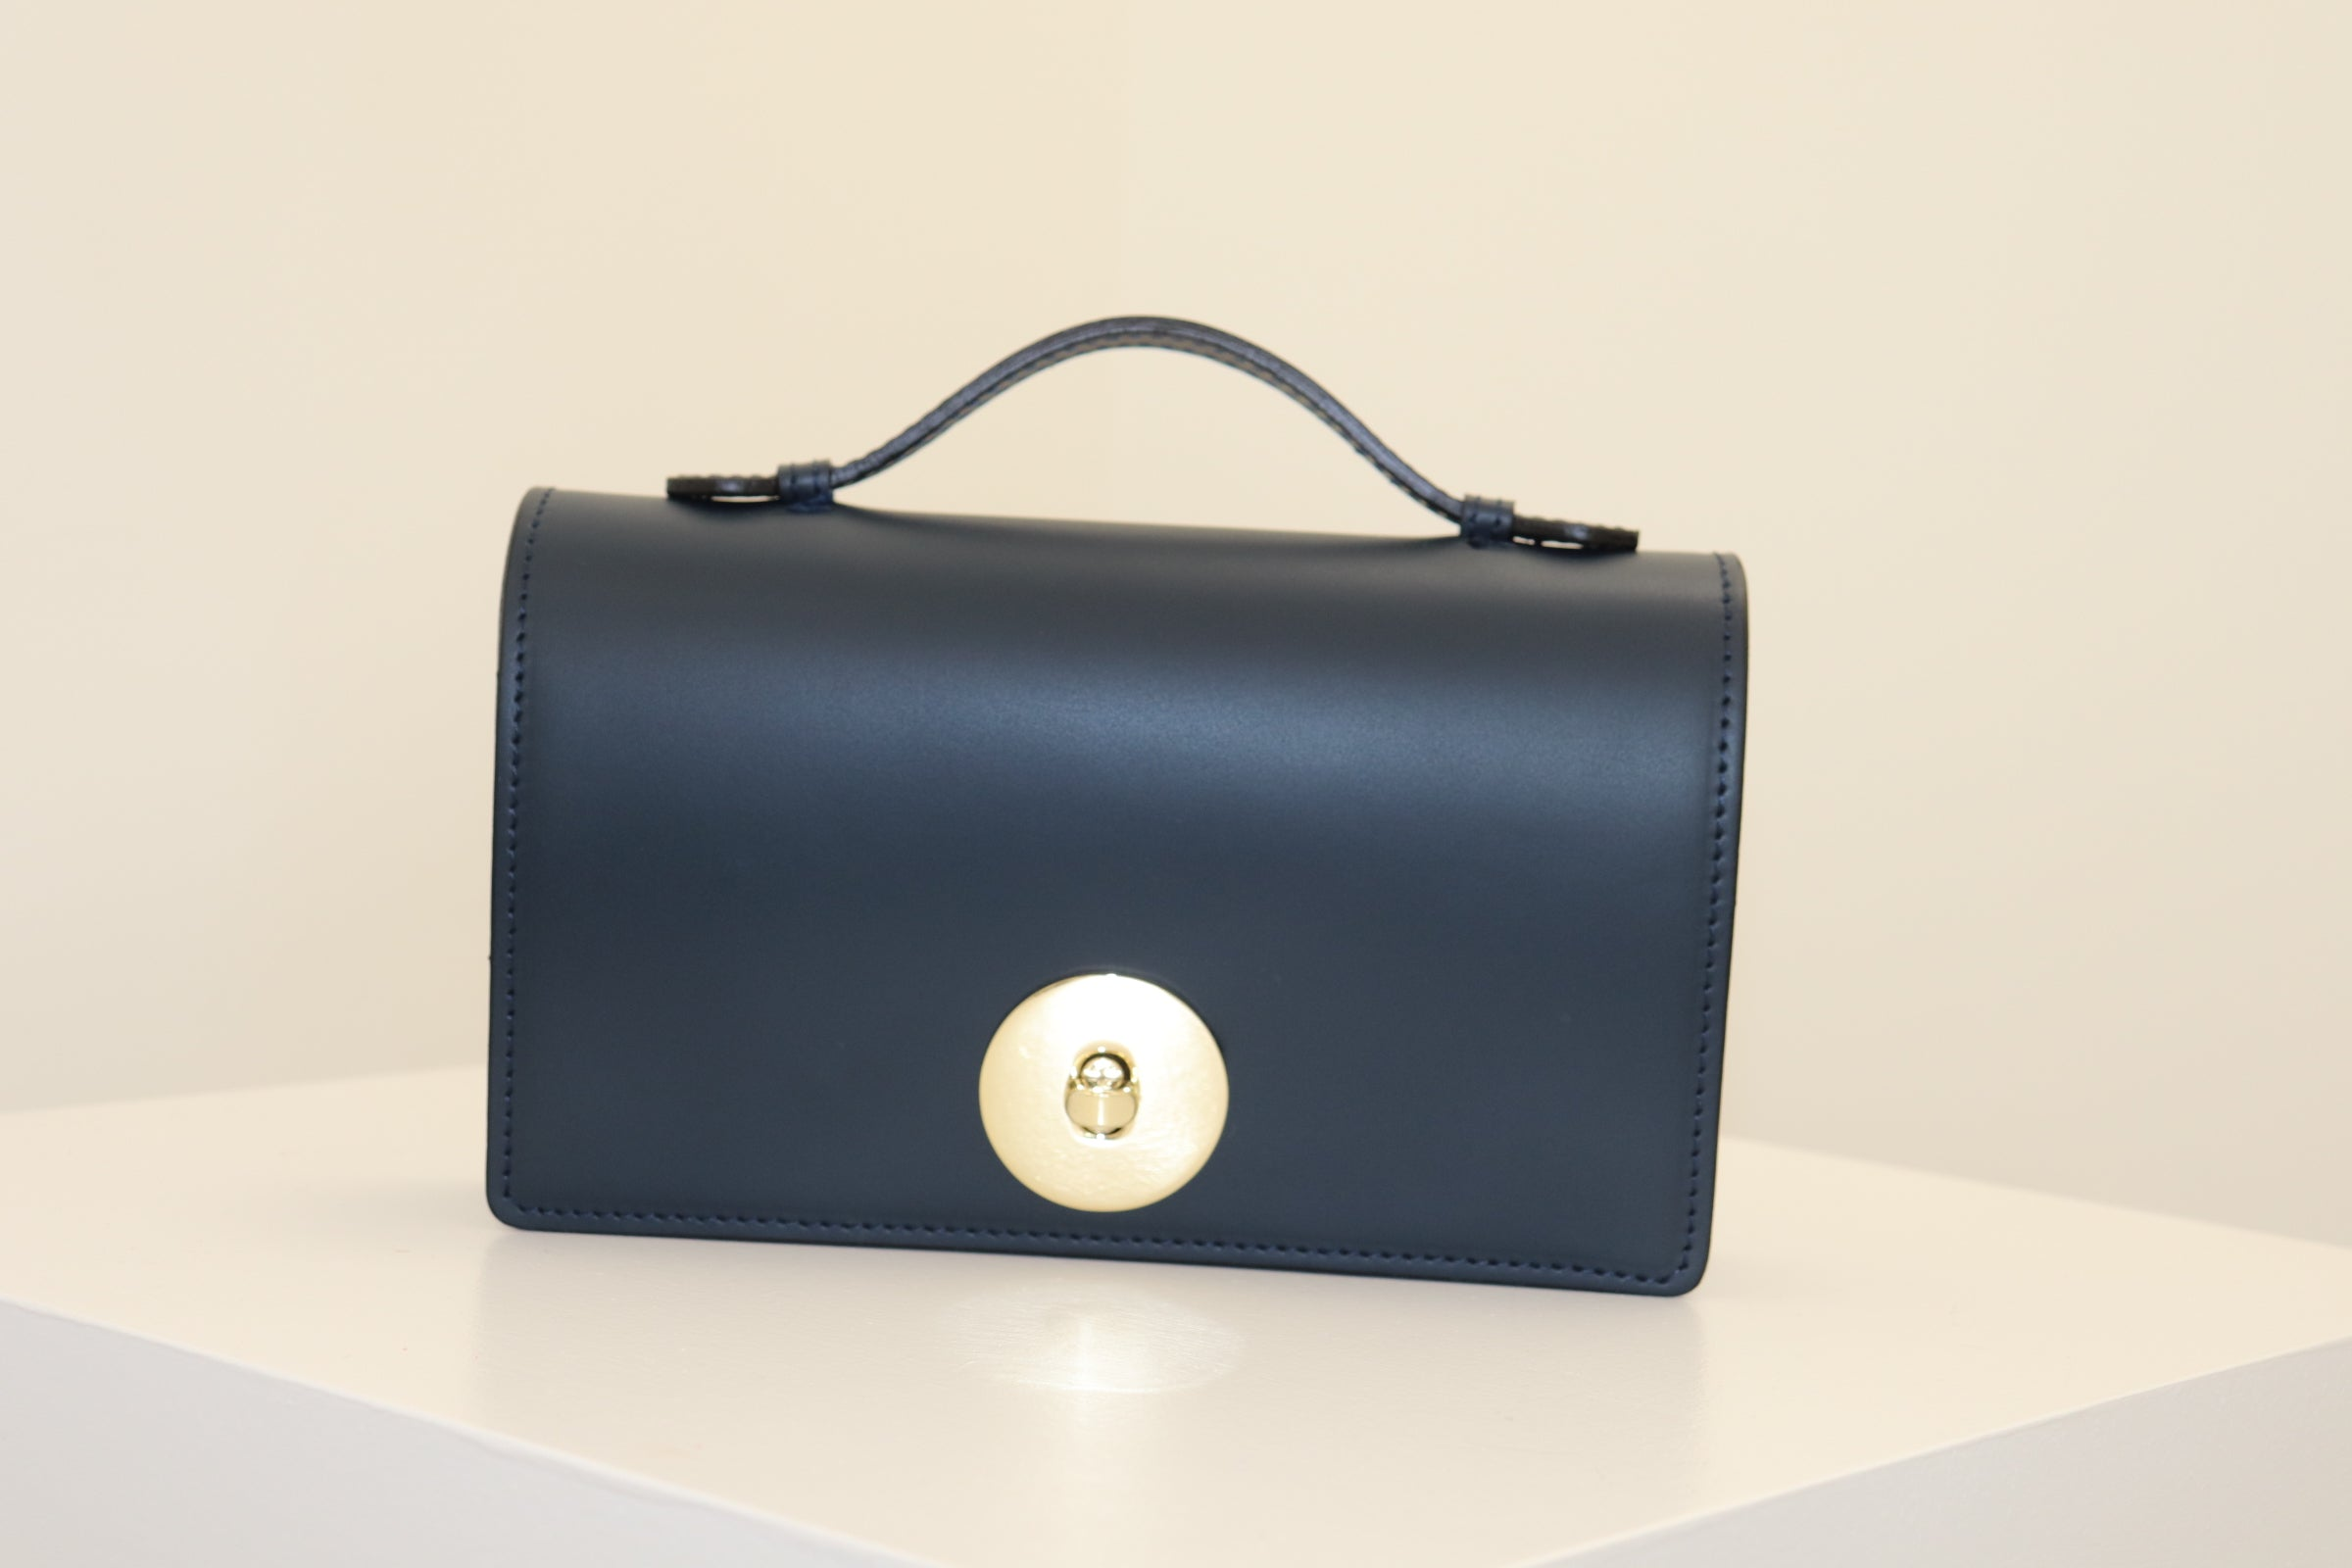 The Rosetta Crossbody Clutch Bag - Black